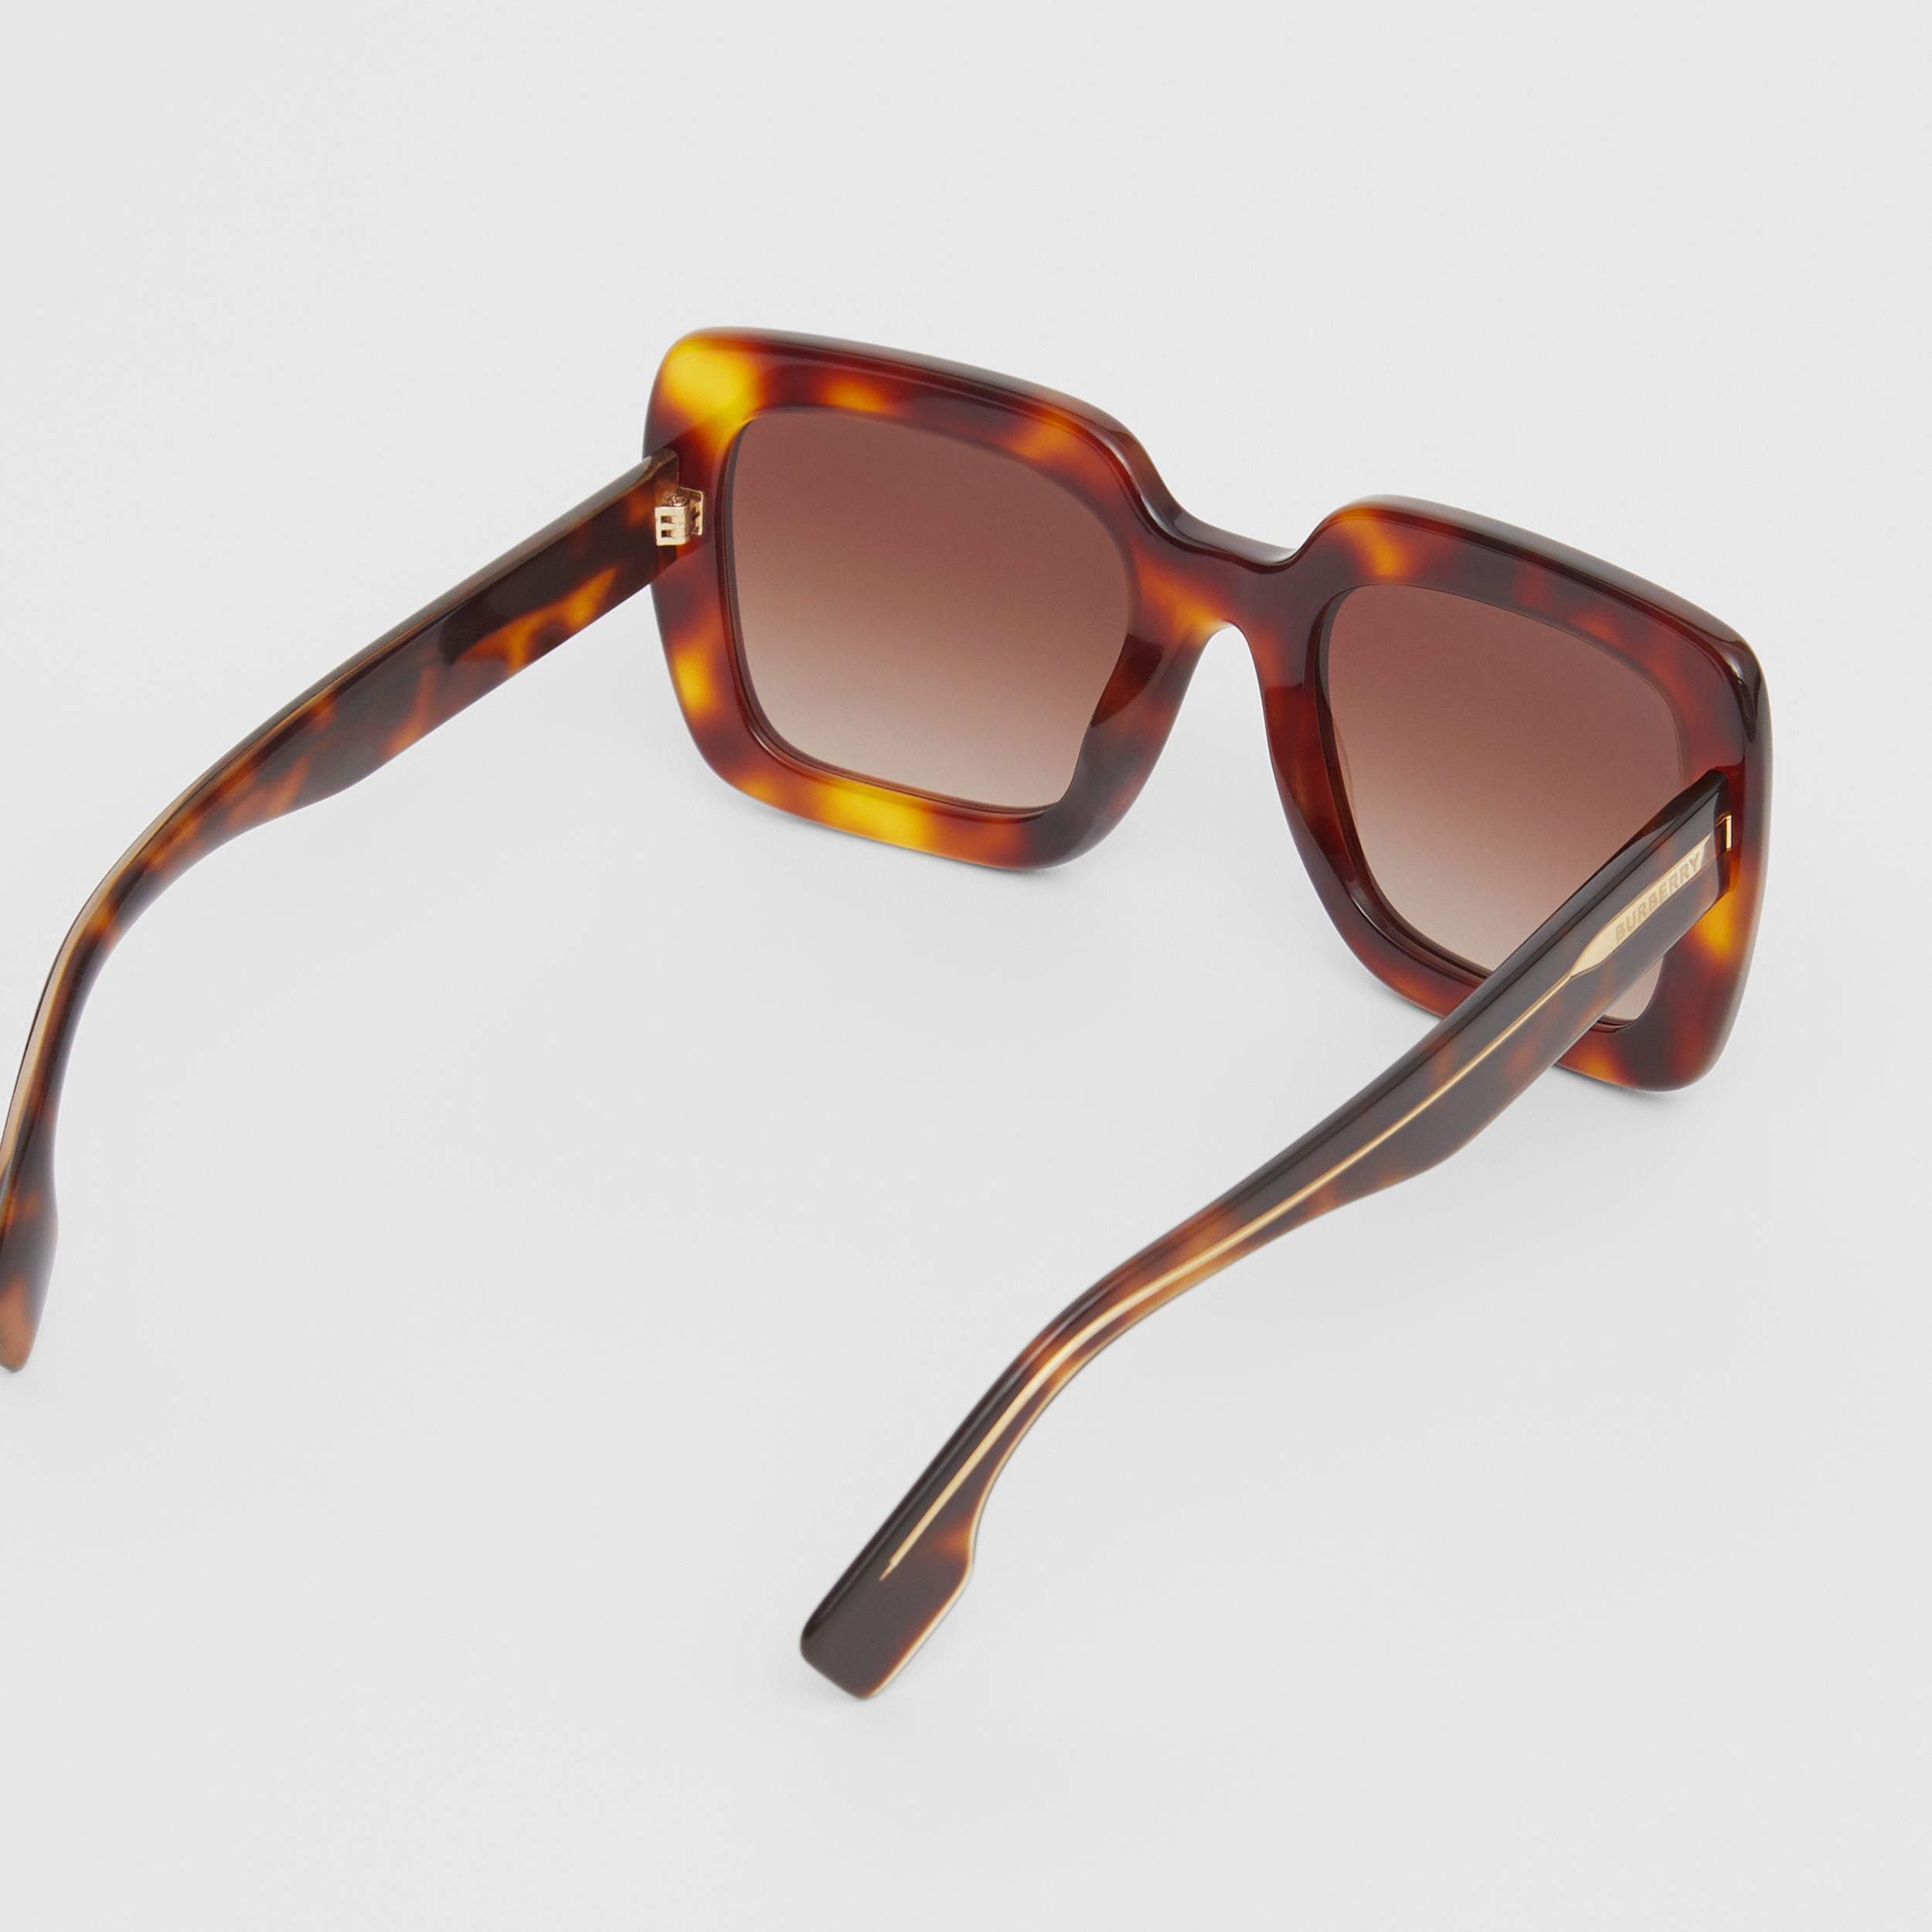 Oversized Square Frame Sunglasses in Tortoiseshell - Women | Burberry Australia - 4